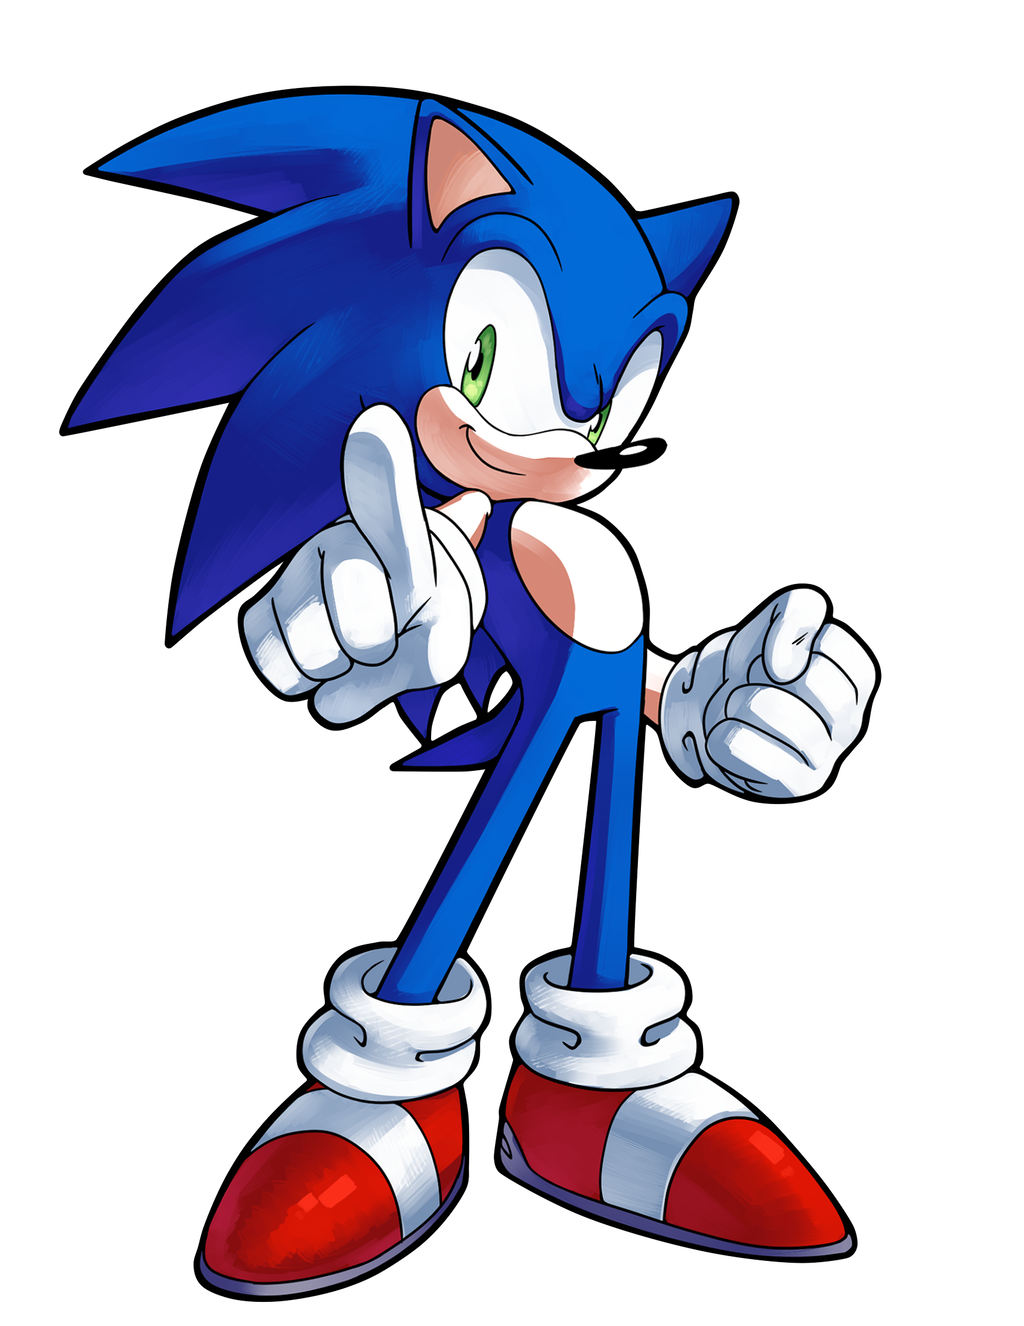 Deviantart Is The World S Largest Online Social Community For Artists And Art Enthusiasts Allowing People To Connect Through Sonic Sonic The Hedgehog Hedgehog